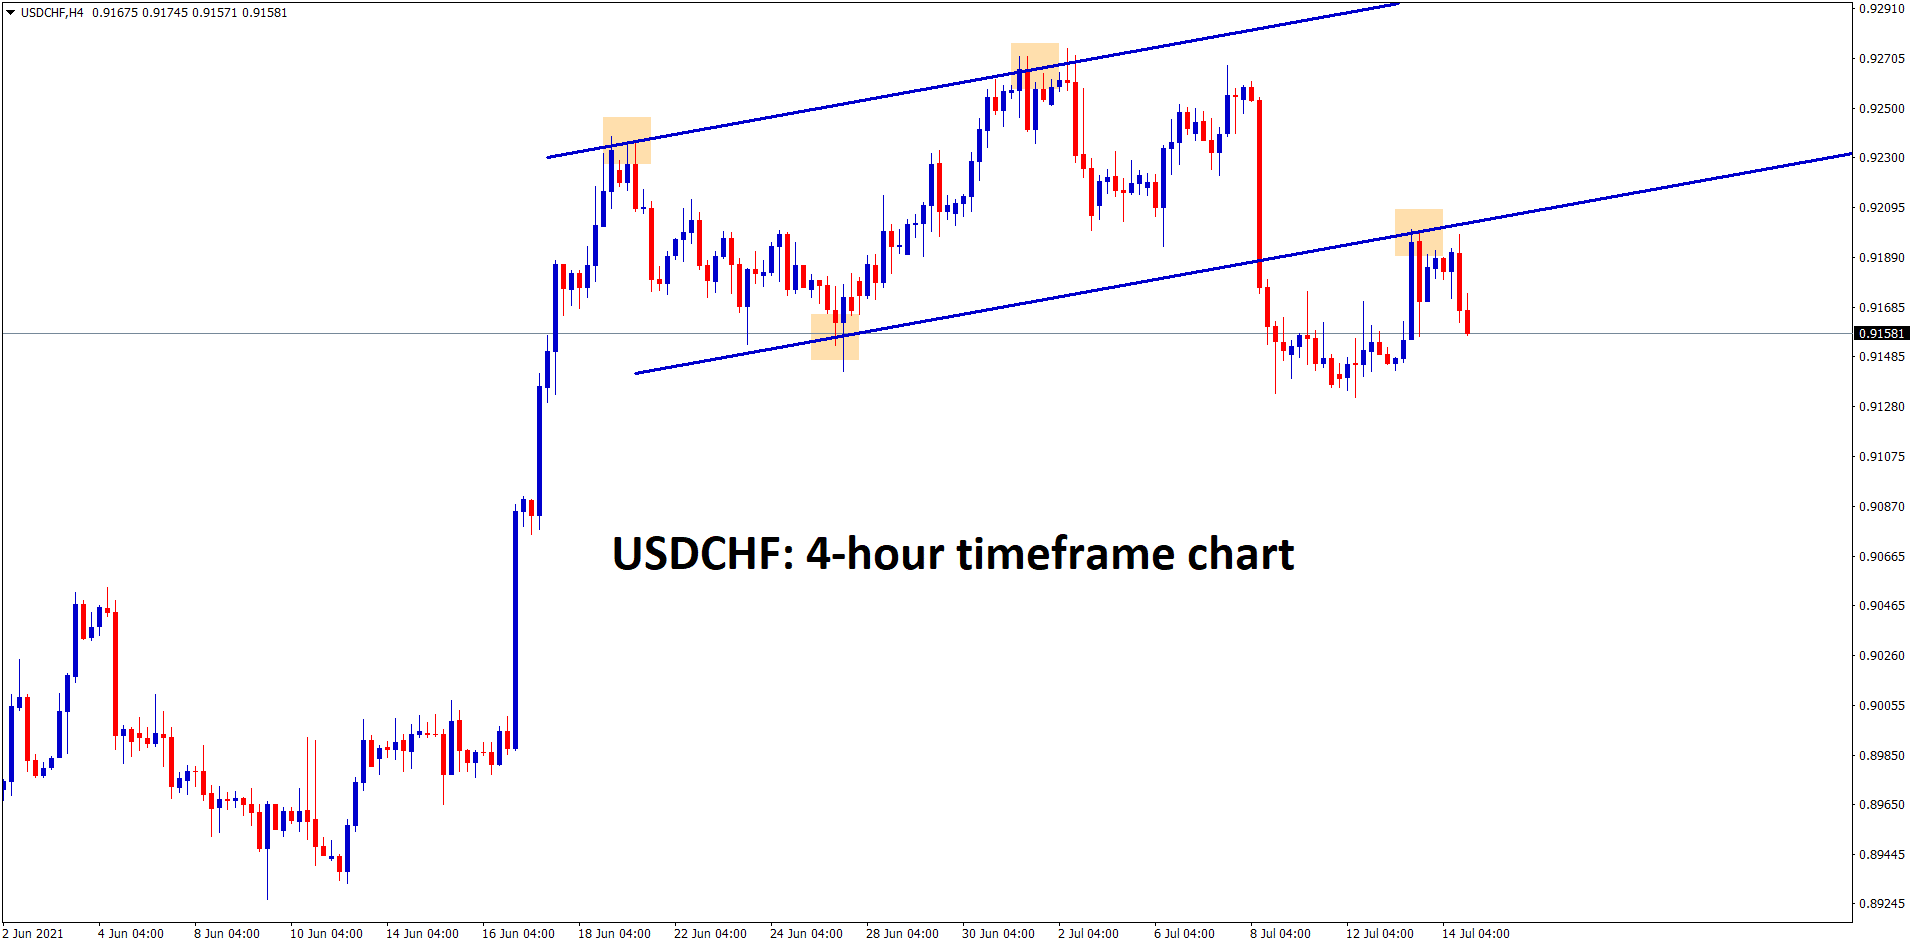 USDCHF made a breakout and retest in the Ascending channel pattern